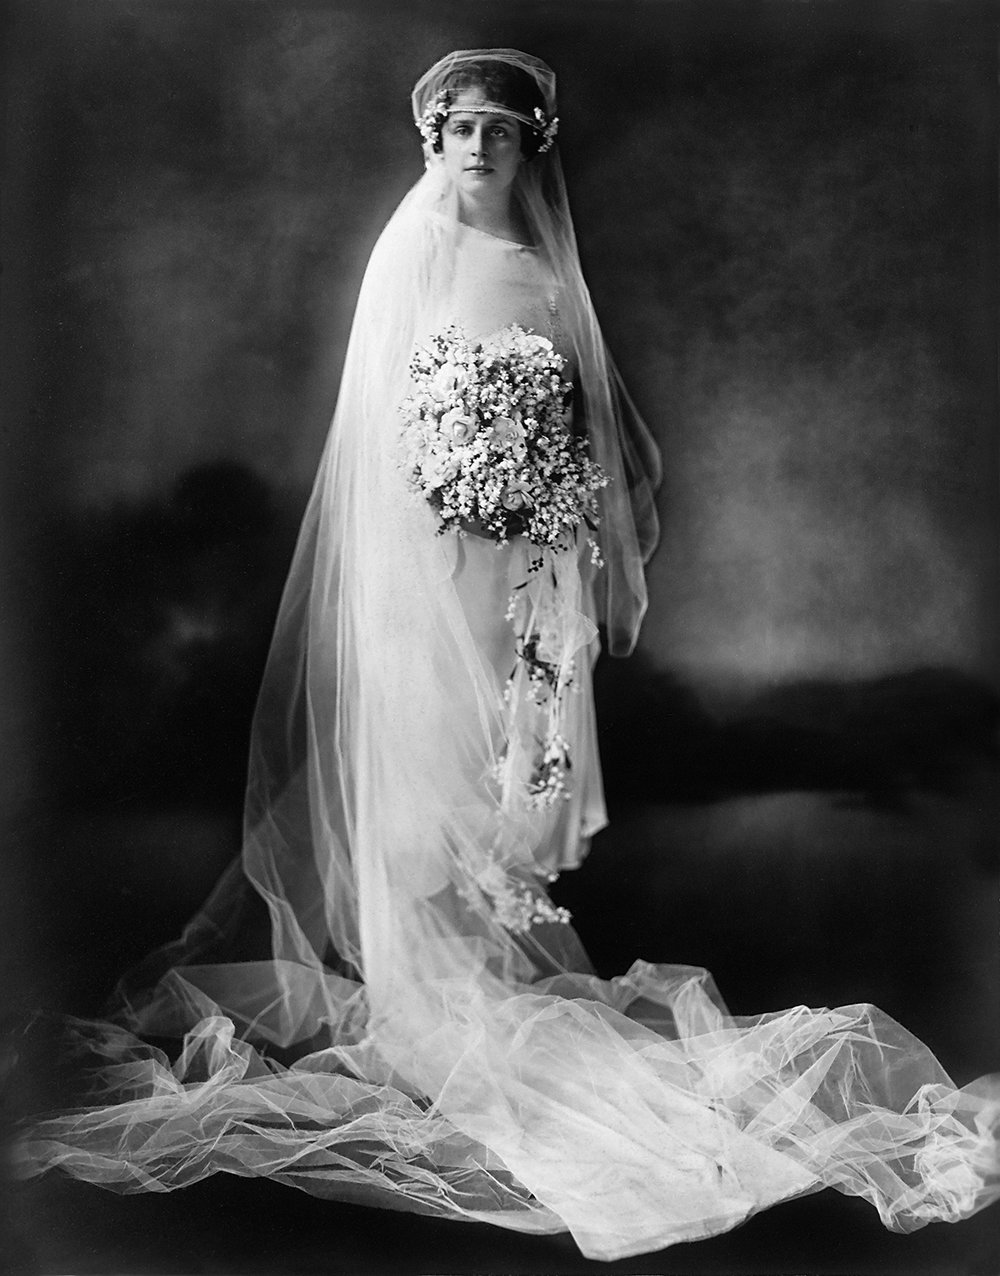 Sylvia in her Wedding Dress